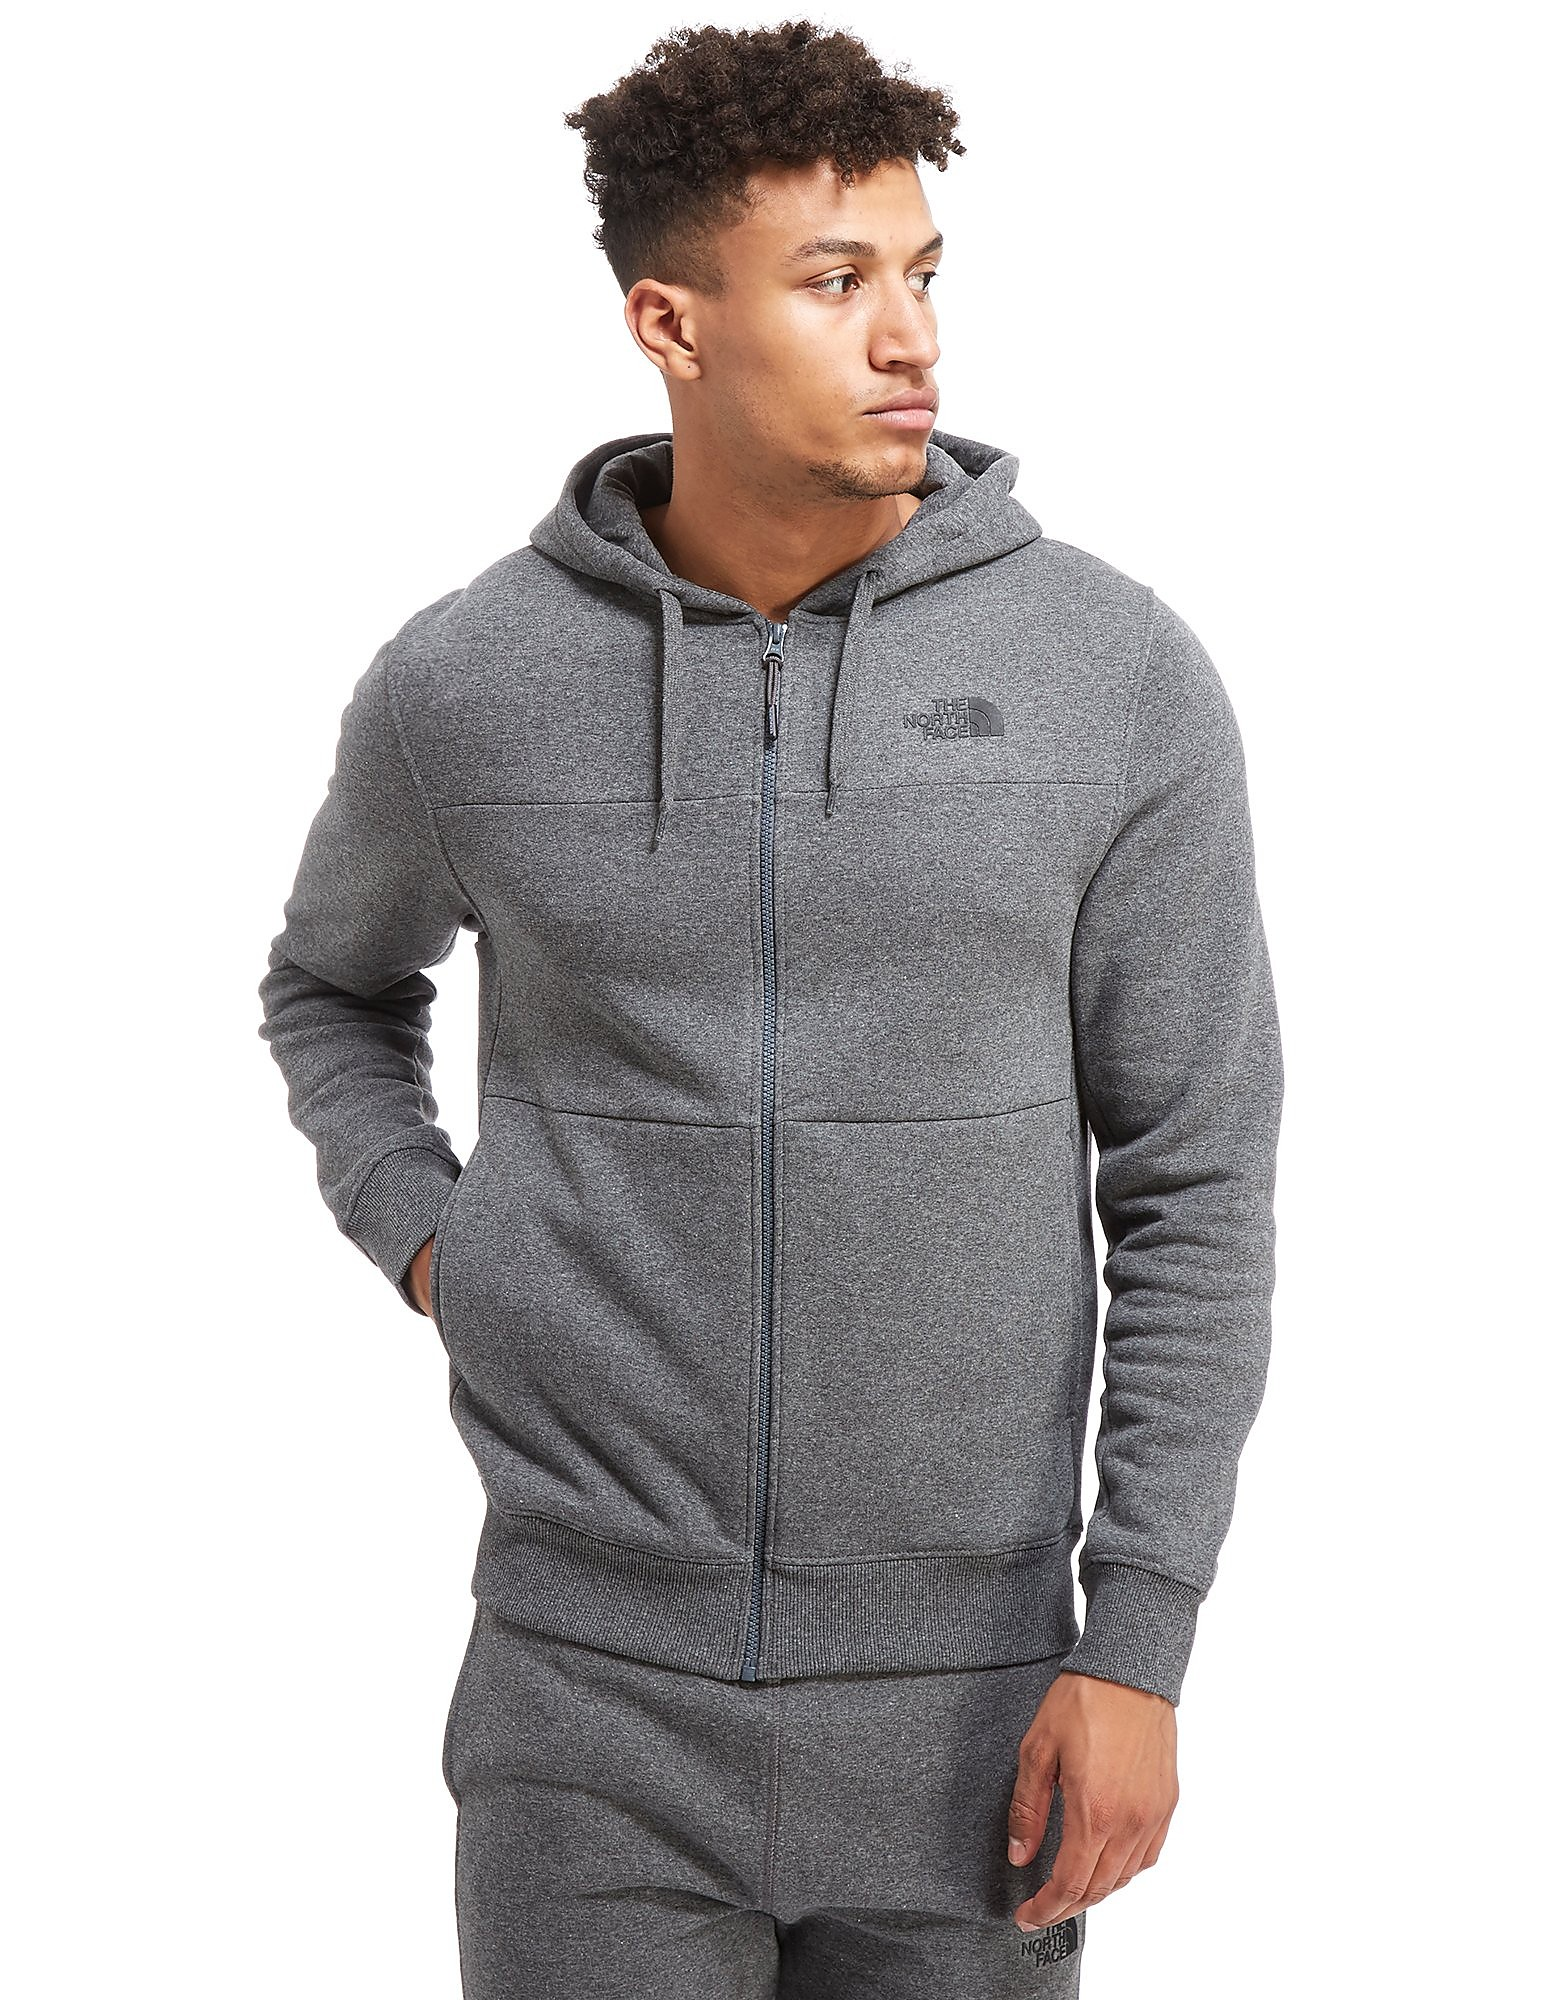 The North Face Bondi 17 Hoody